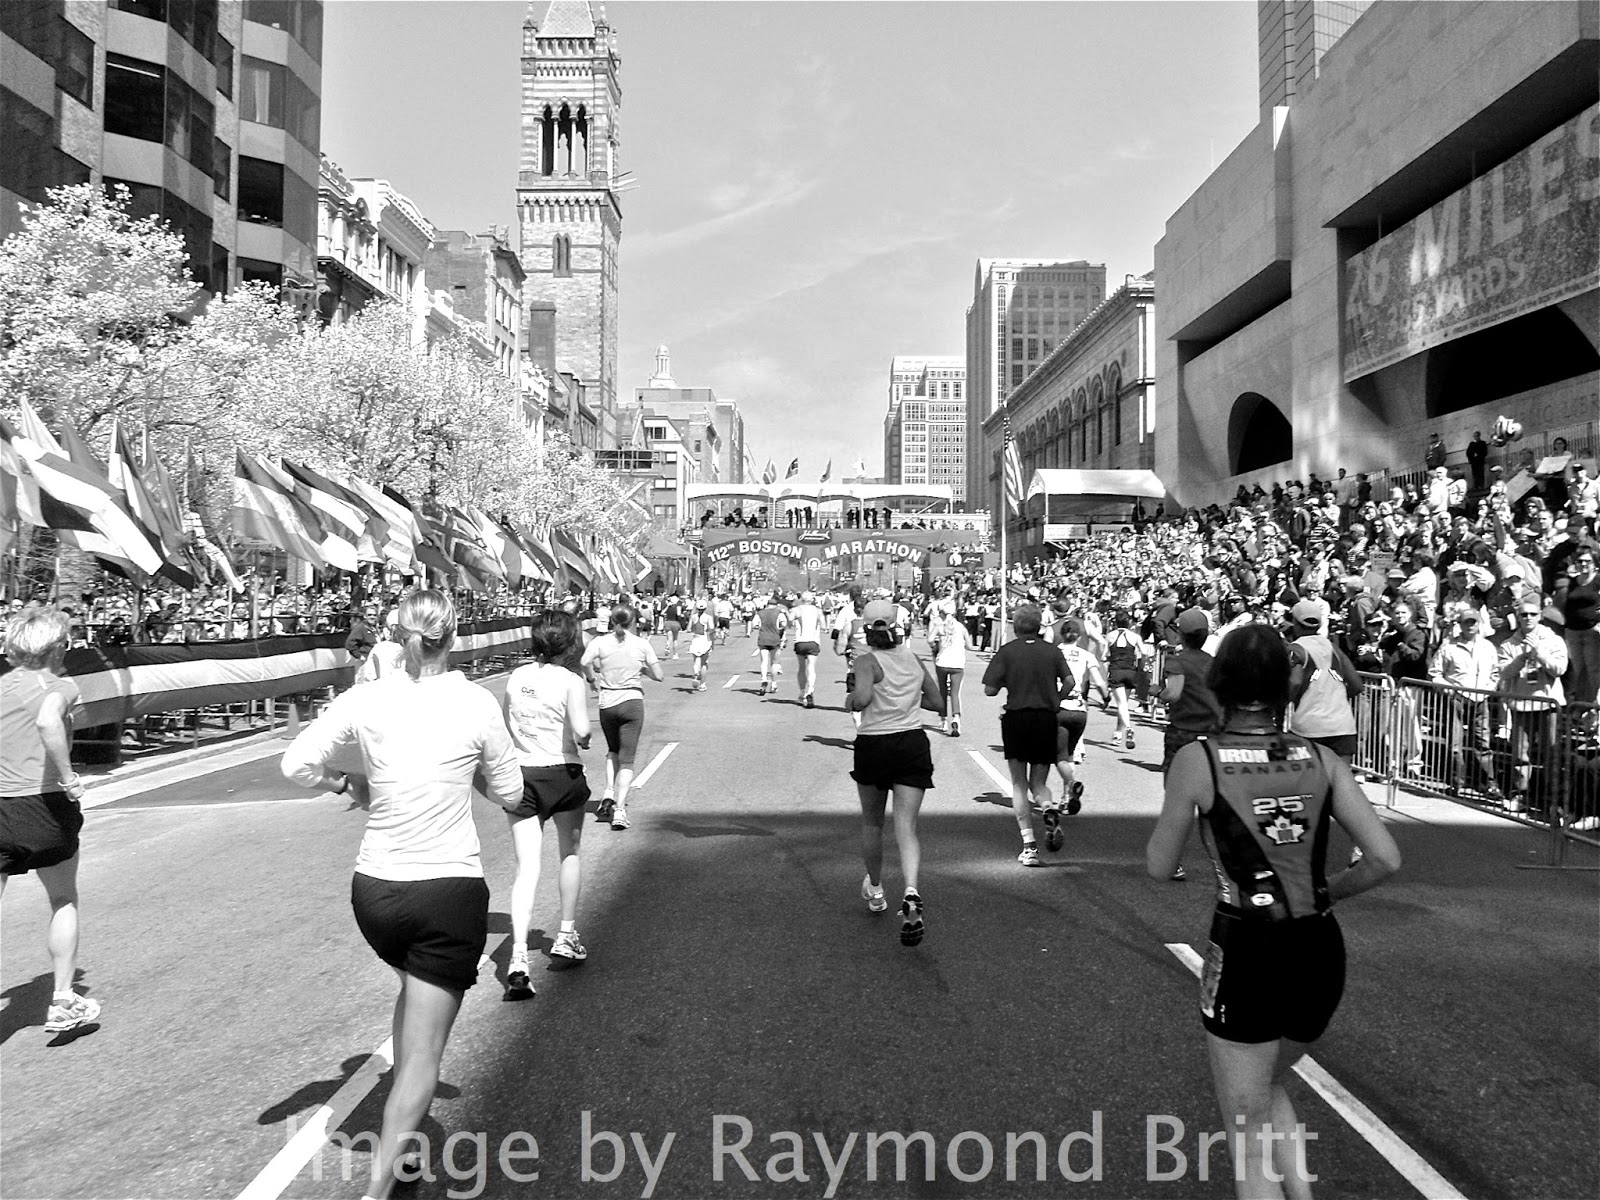 RunTri: Boston Marathon Finish Line on Boylston Street: The Runner's